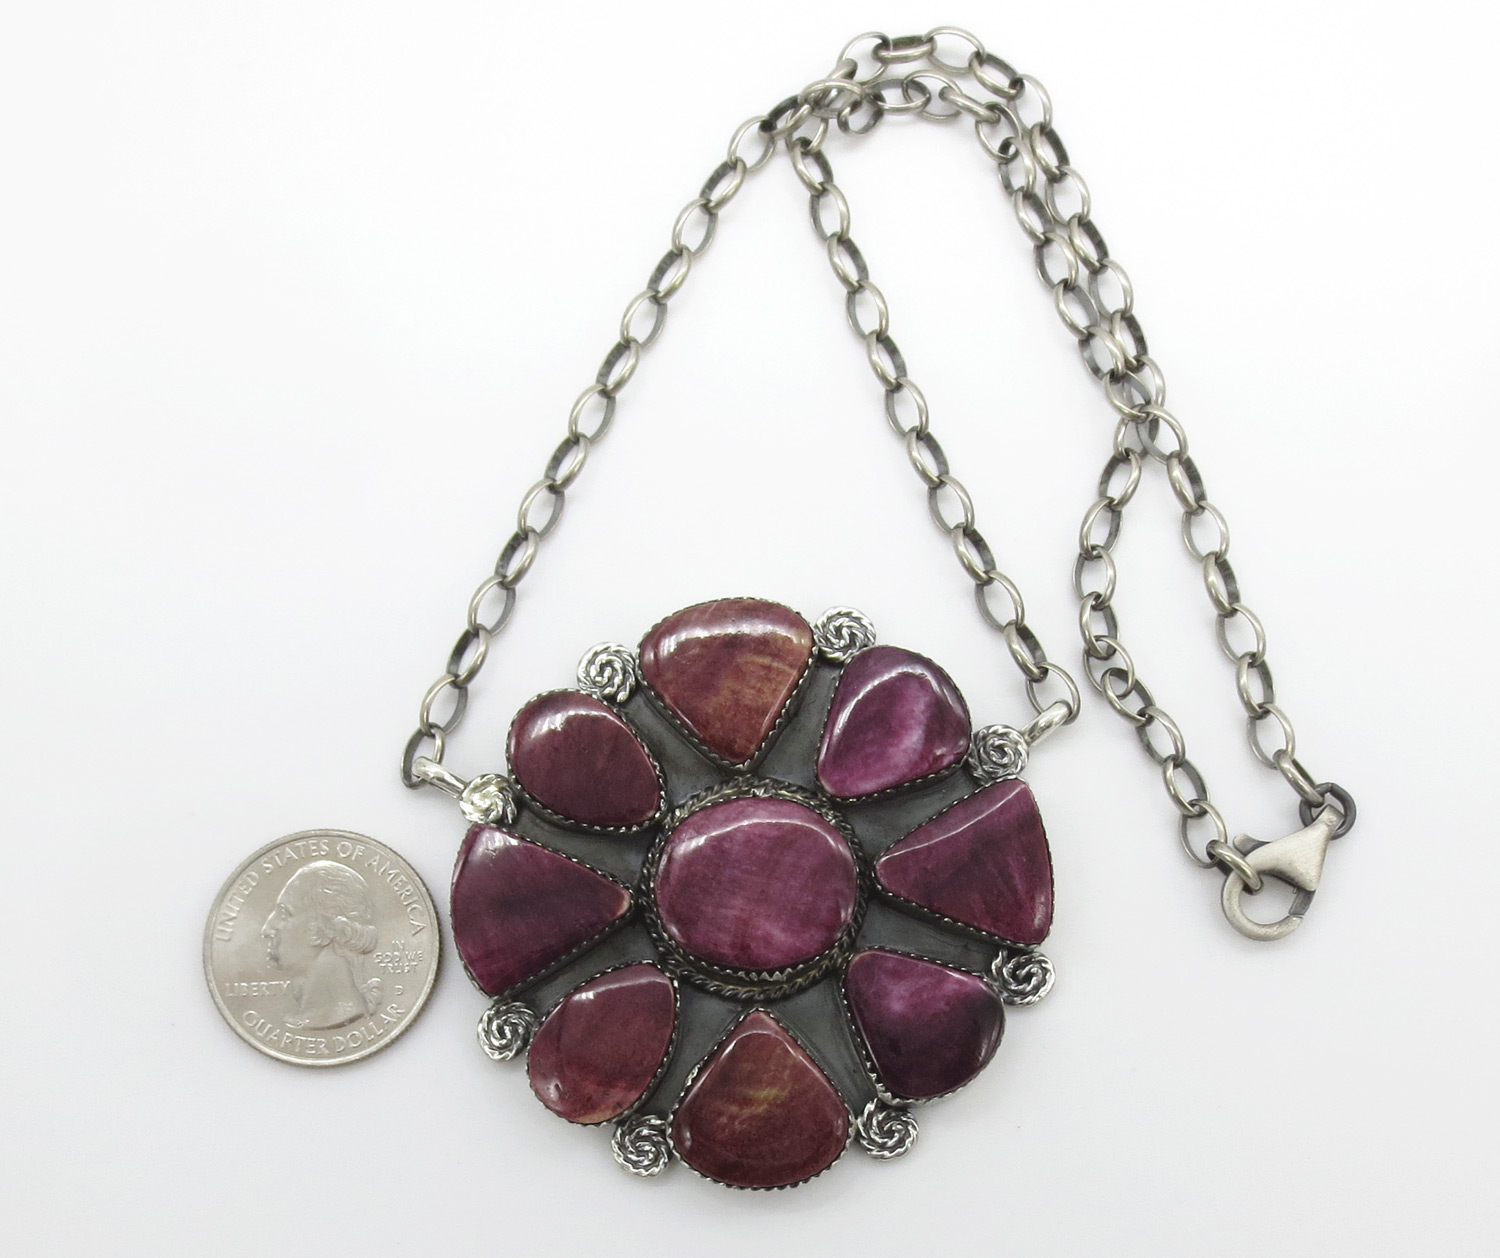 Image 1 of Big Purple Spiny Oyster & Sterling Silver Pendant Necklace - 3861dt